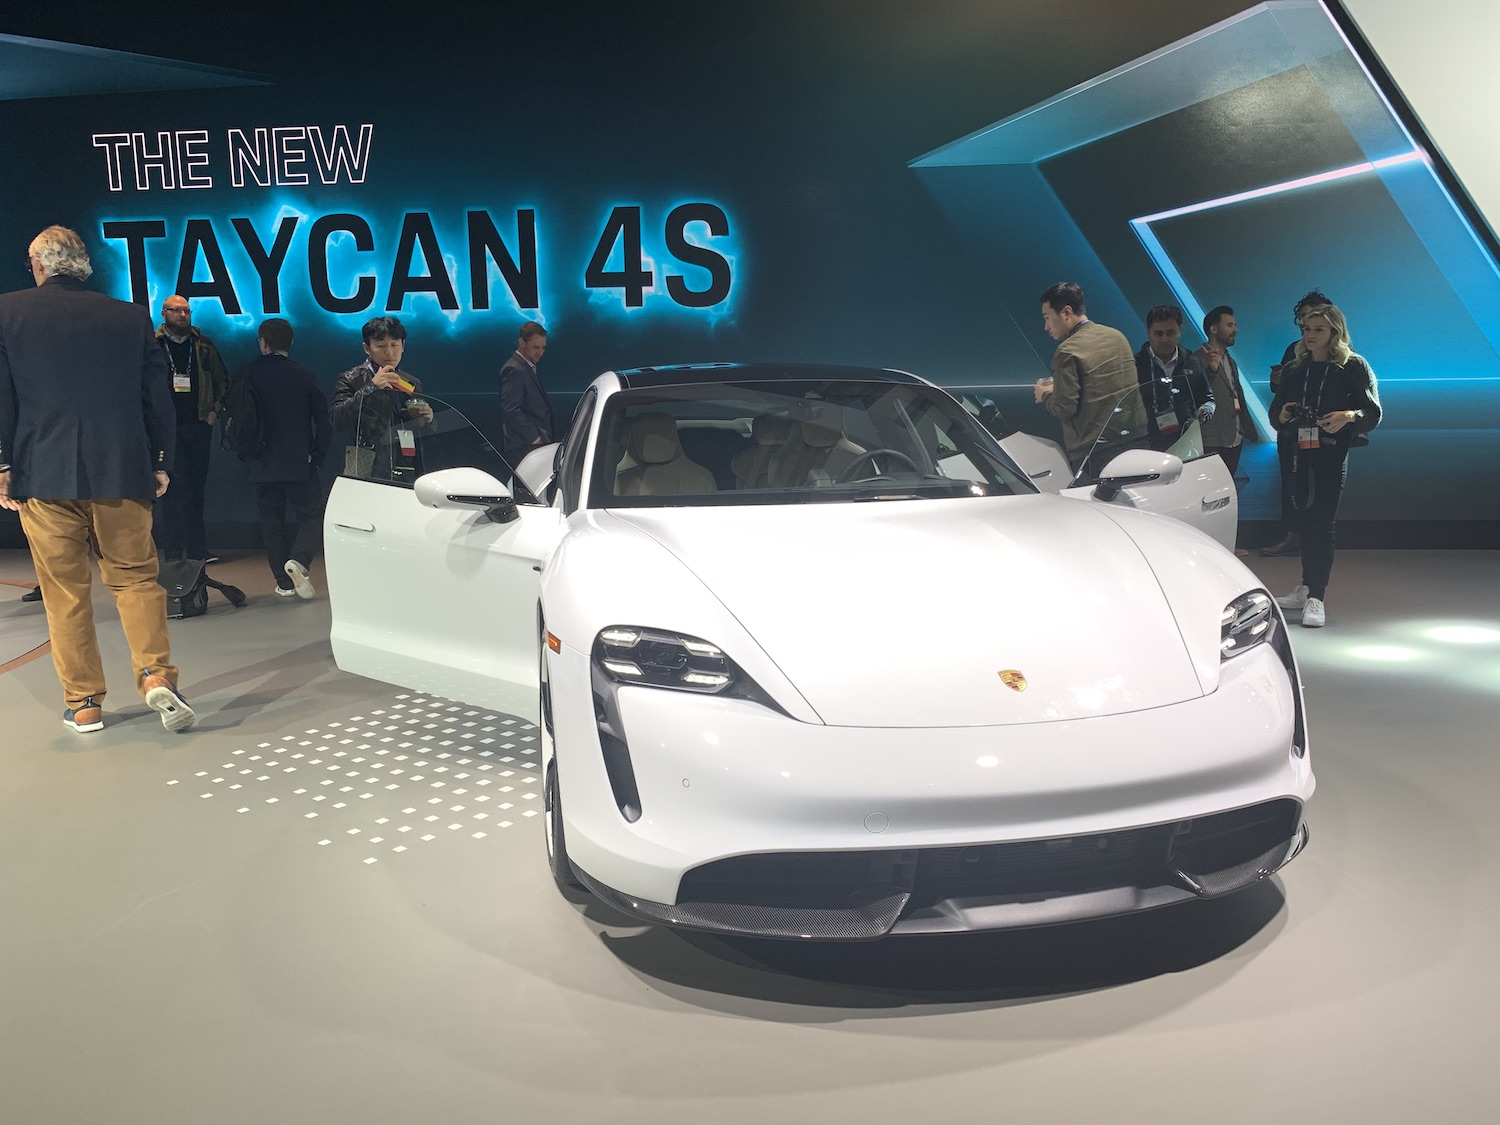 New taycan 4s front